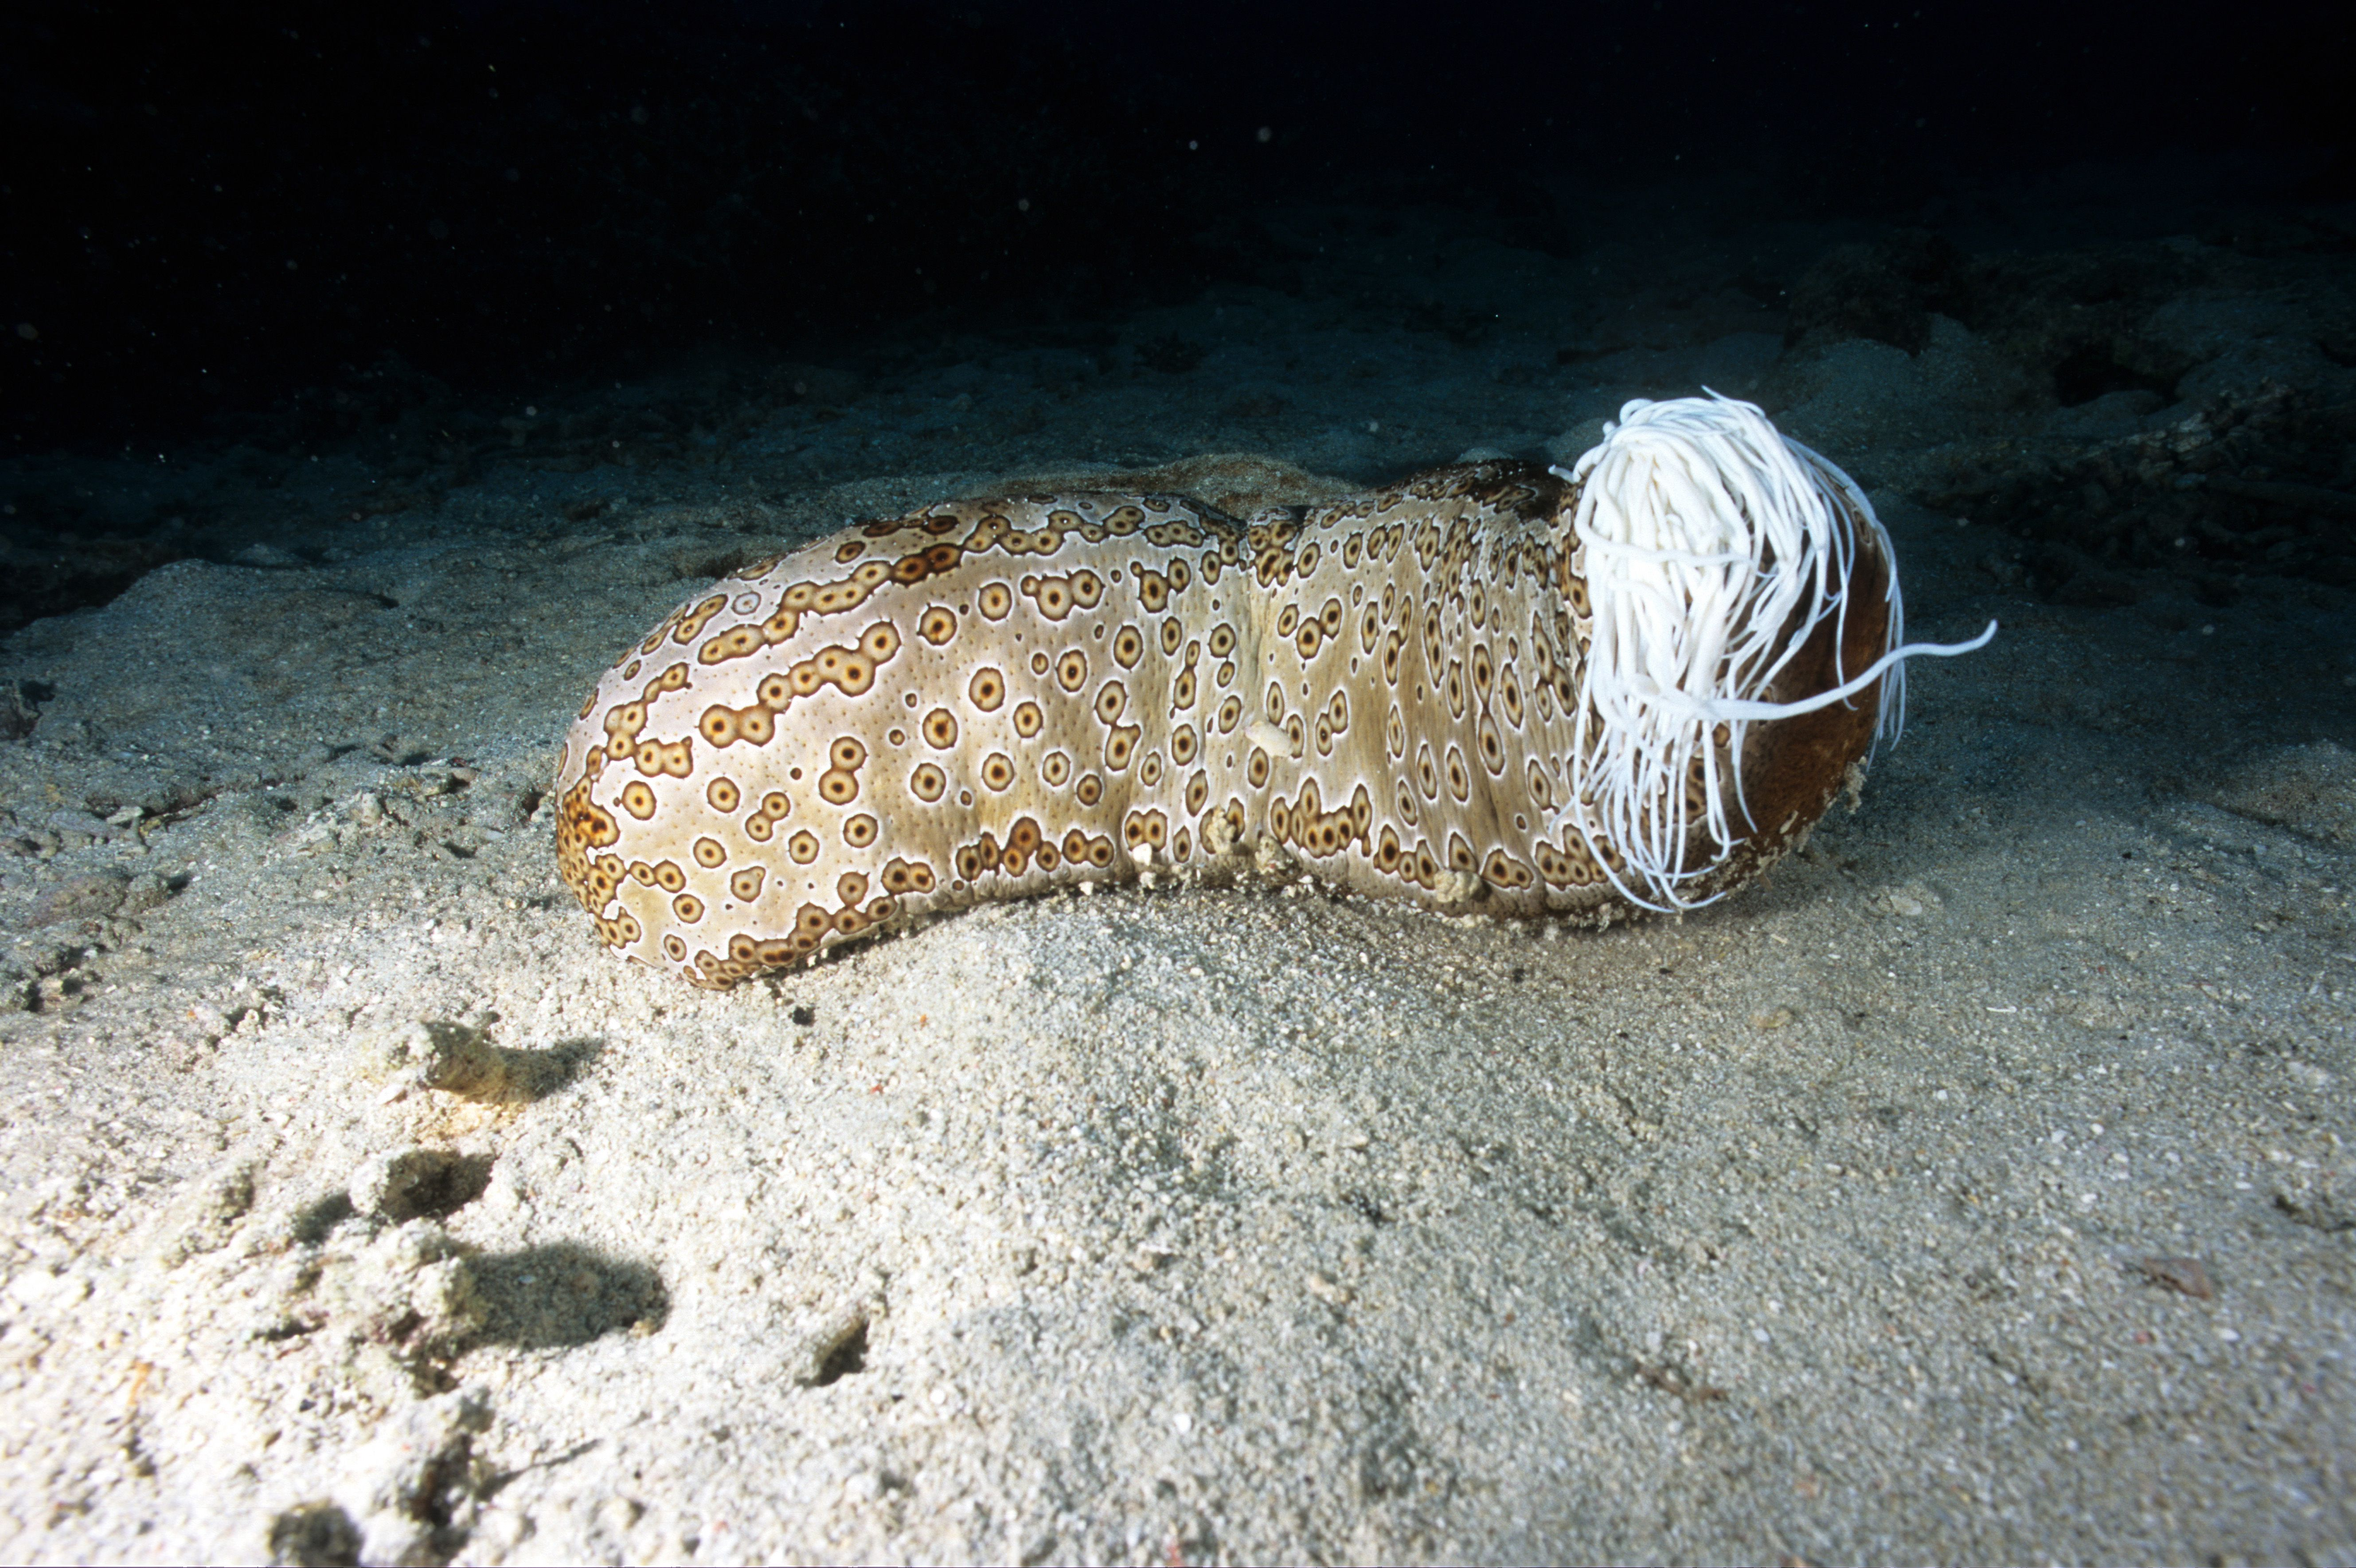 Leopard sea cucumber with toxic sticky white tubules (Cuvierian tubules) released from anus for defense